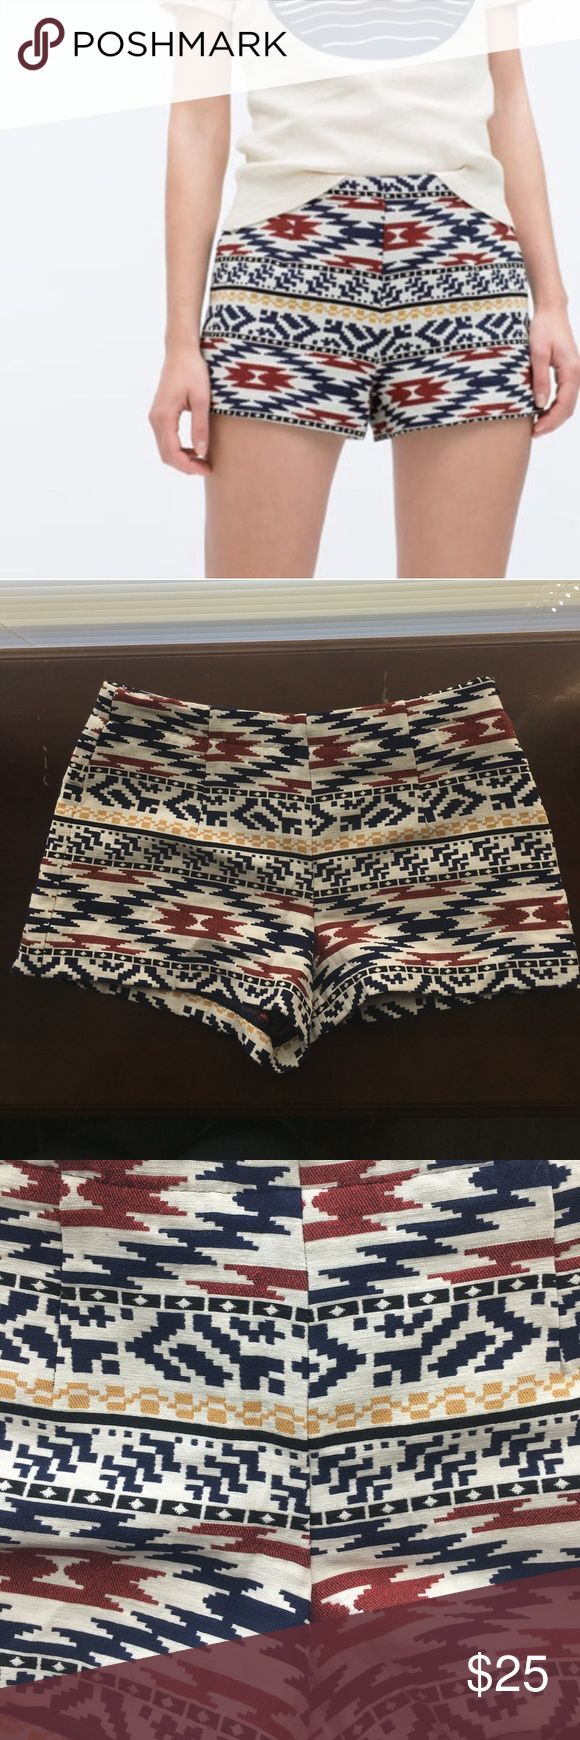 Zara tribal shorts Never worn. I work as a flight attendant so please bear with me to get these items shipped out. I will do it as fast as I can. I have priced lower to acknowledge your wait time. My boyfriend will most likely ship for me. Thanks!! Zara Shorts